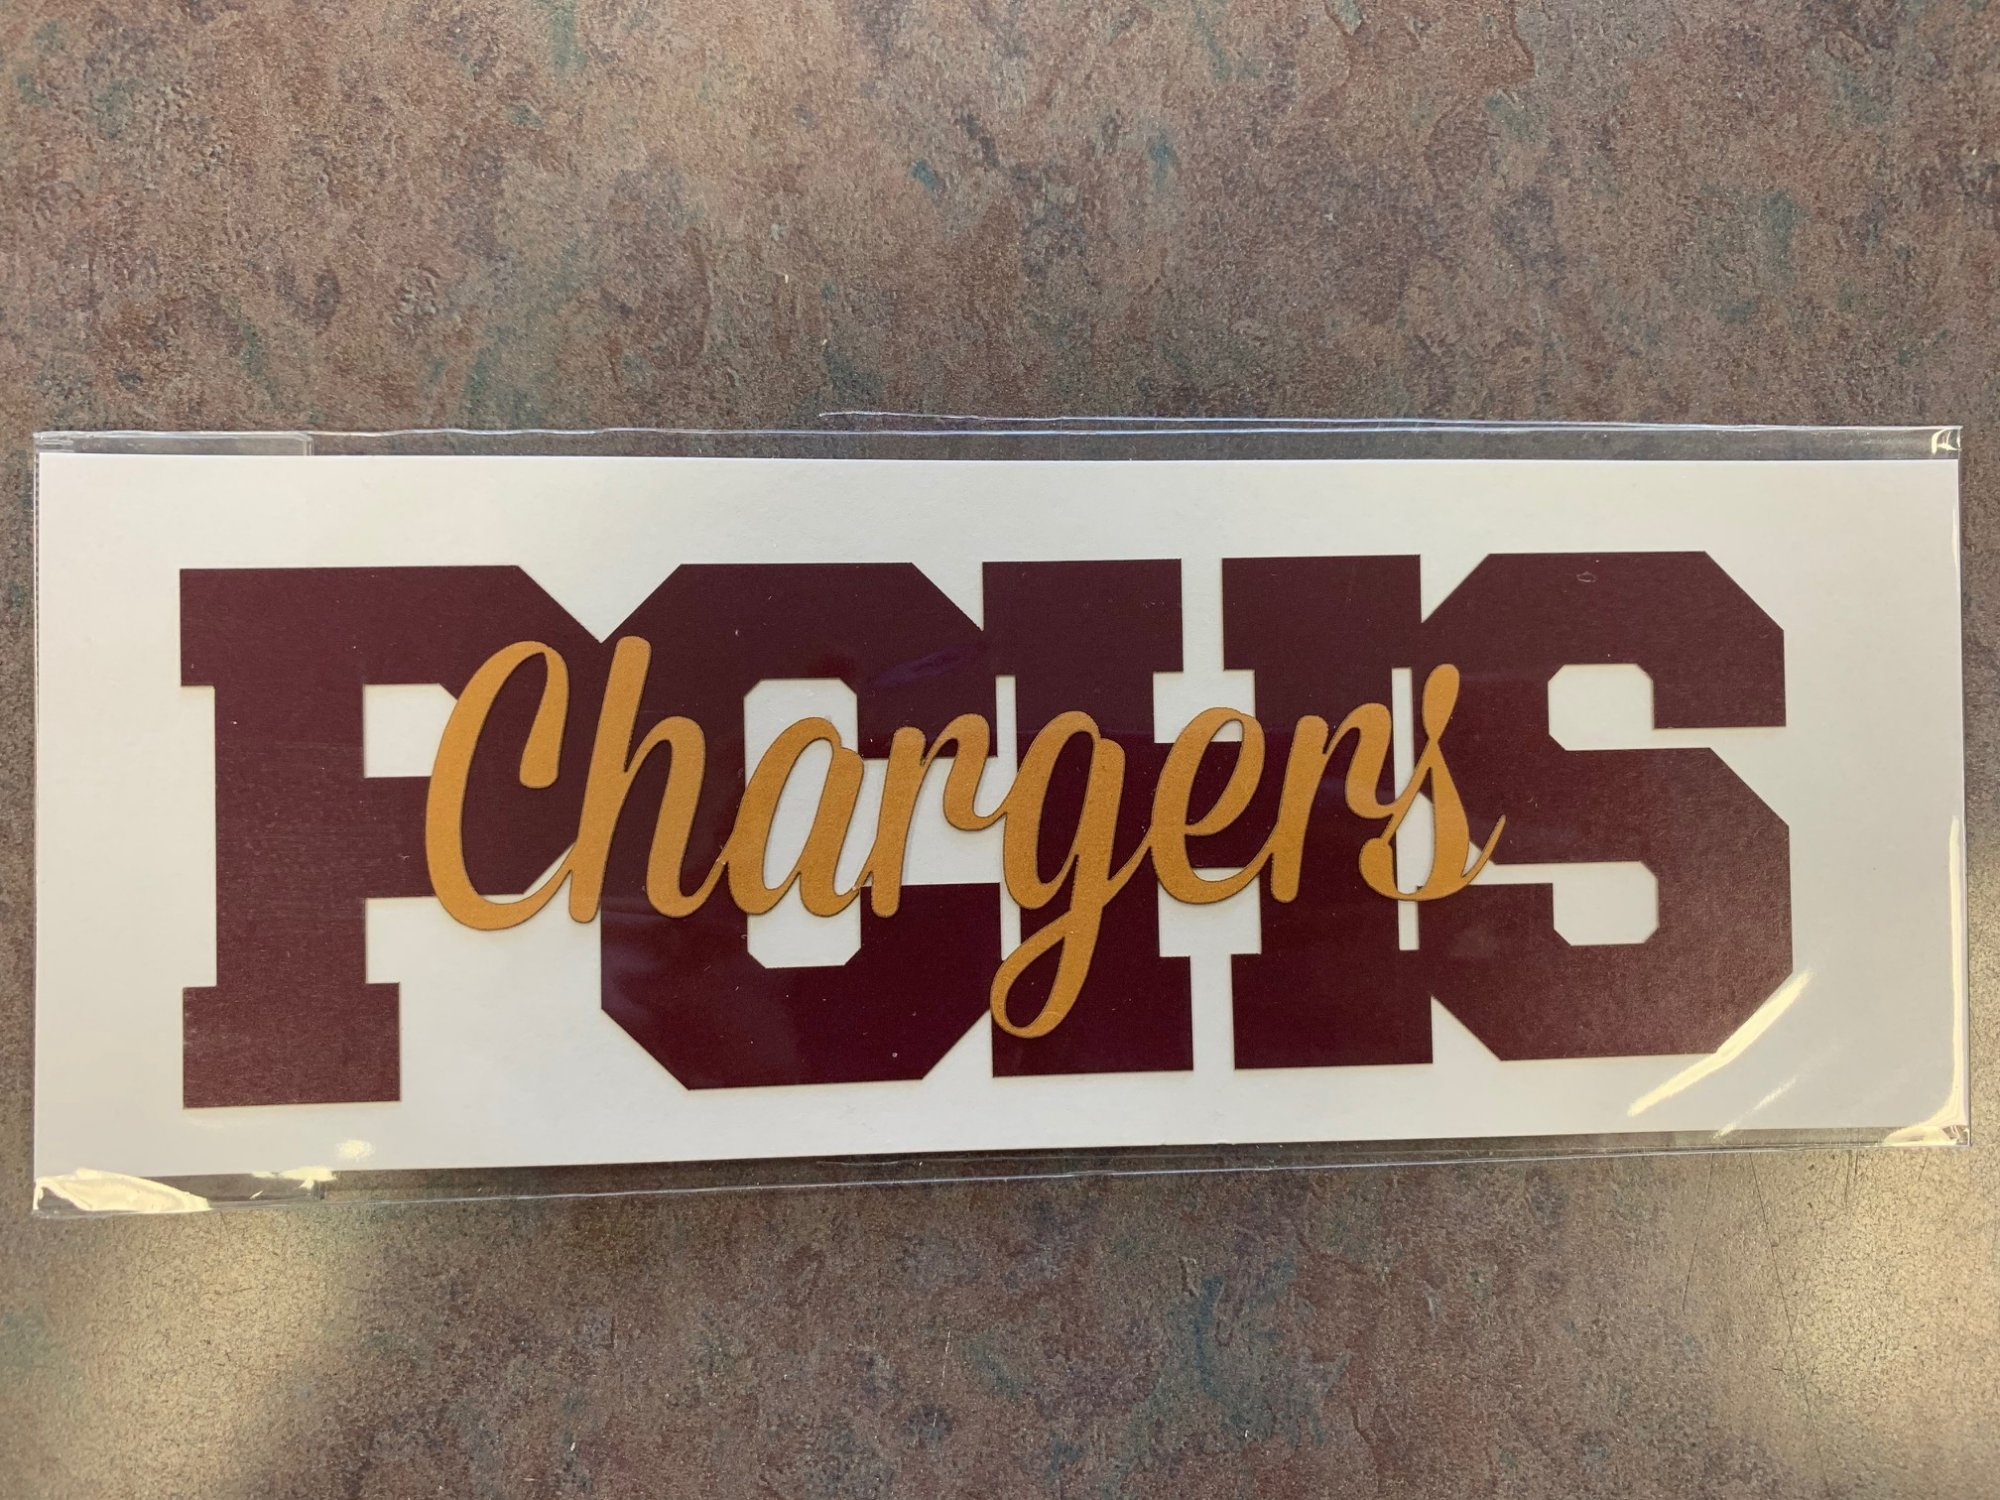 PCHS Chargers Title Die Cut